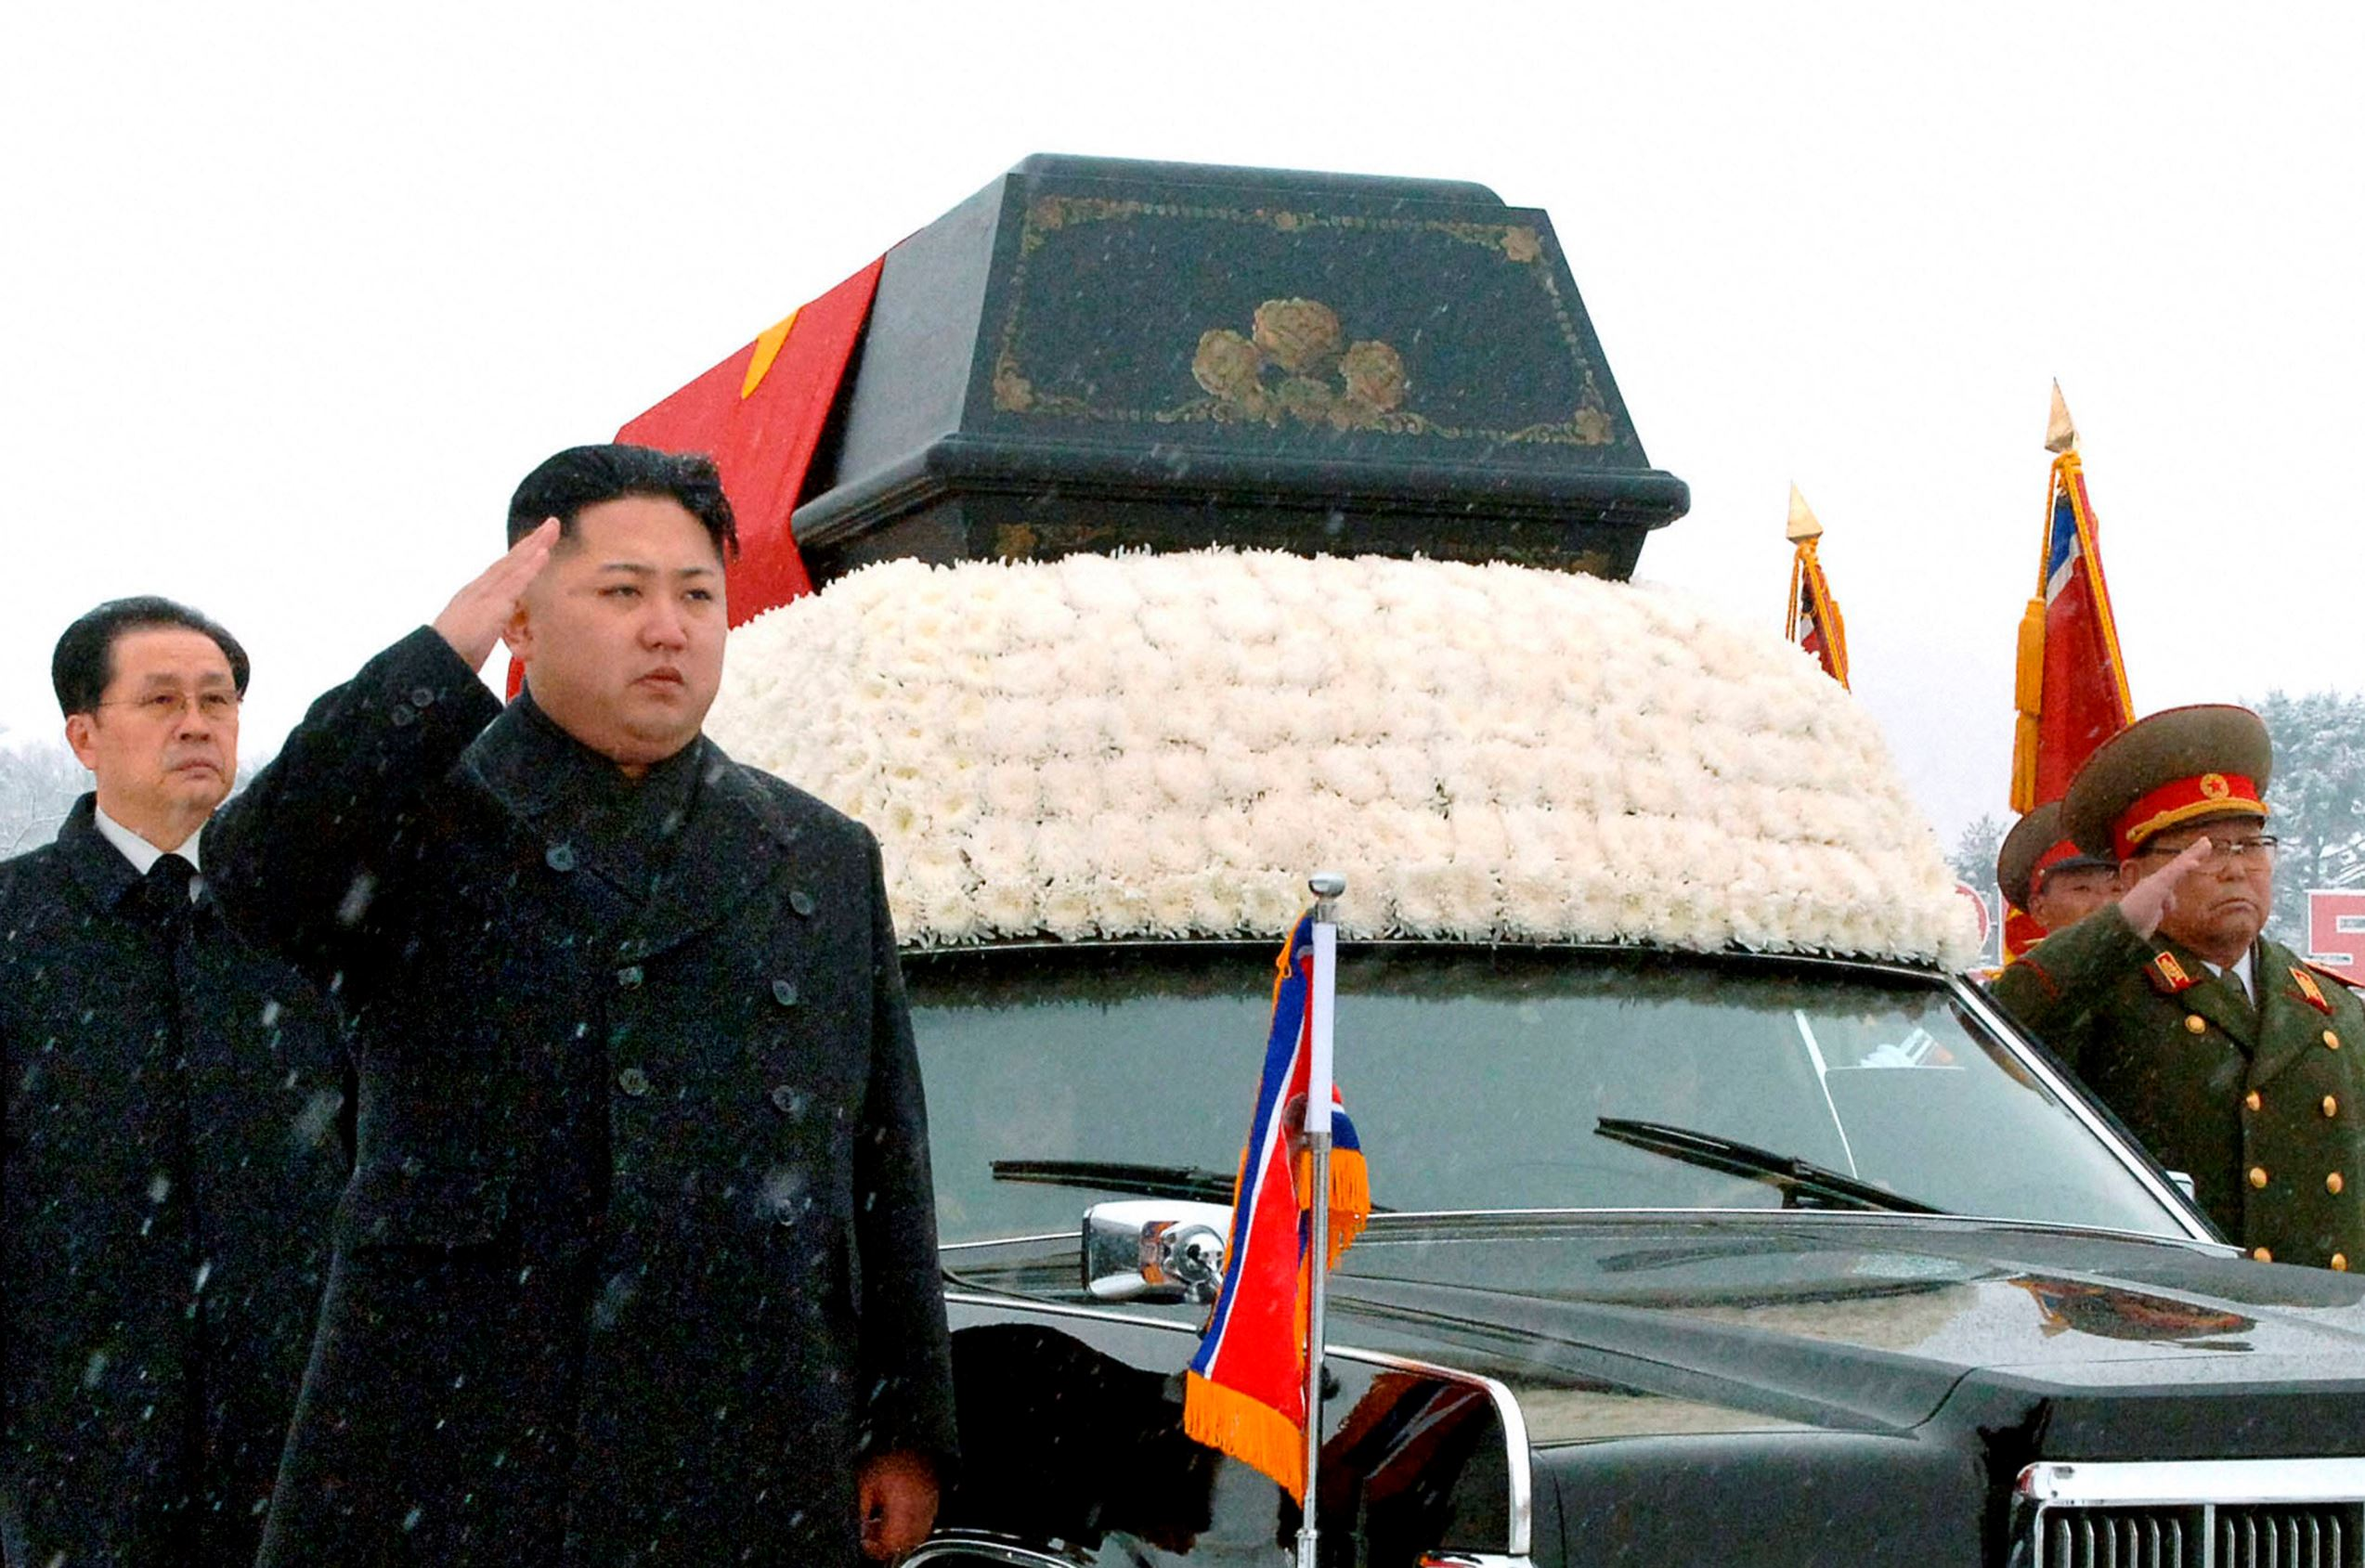 North Korea's new leader Kim Jong Un (2nd L) salutes as he and his uncle Jang Song Thaek (L) accompany the hearse carrying the coffin of late North Korean leader Kim Jong Il during his funeral procession in Pyongyang in this file photo taken by Kyodo December 28, 2011. North Korea said on December 13, 2013 that Jang, previously considered the second most powerful man in the secretive state, has been executed for treason, the biggest upheaval since the death of Kim's father two years ago.